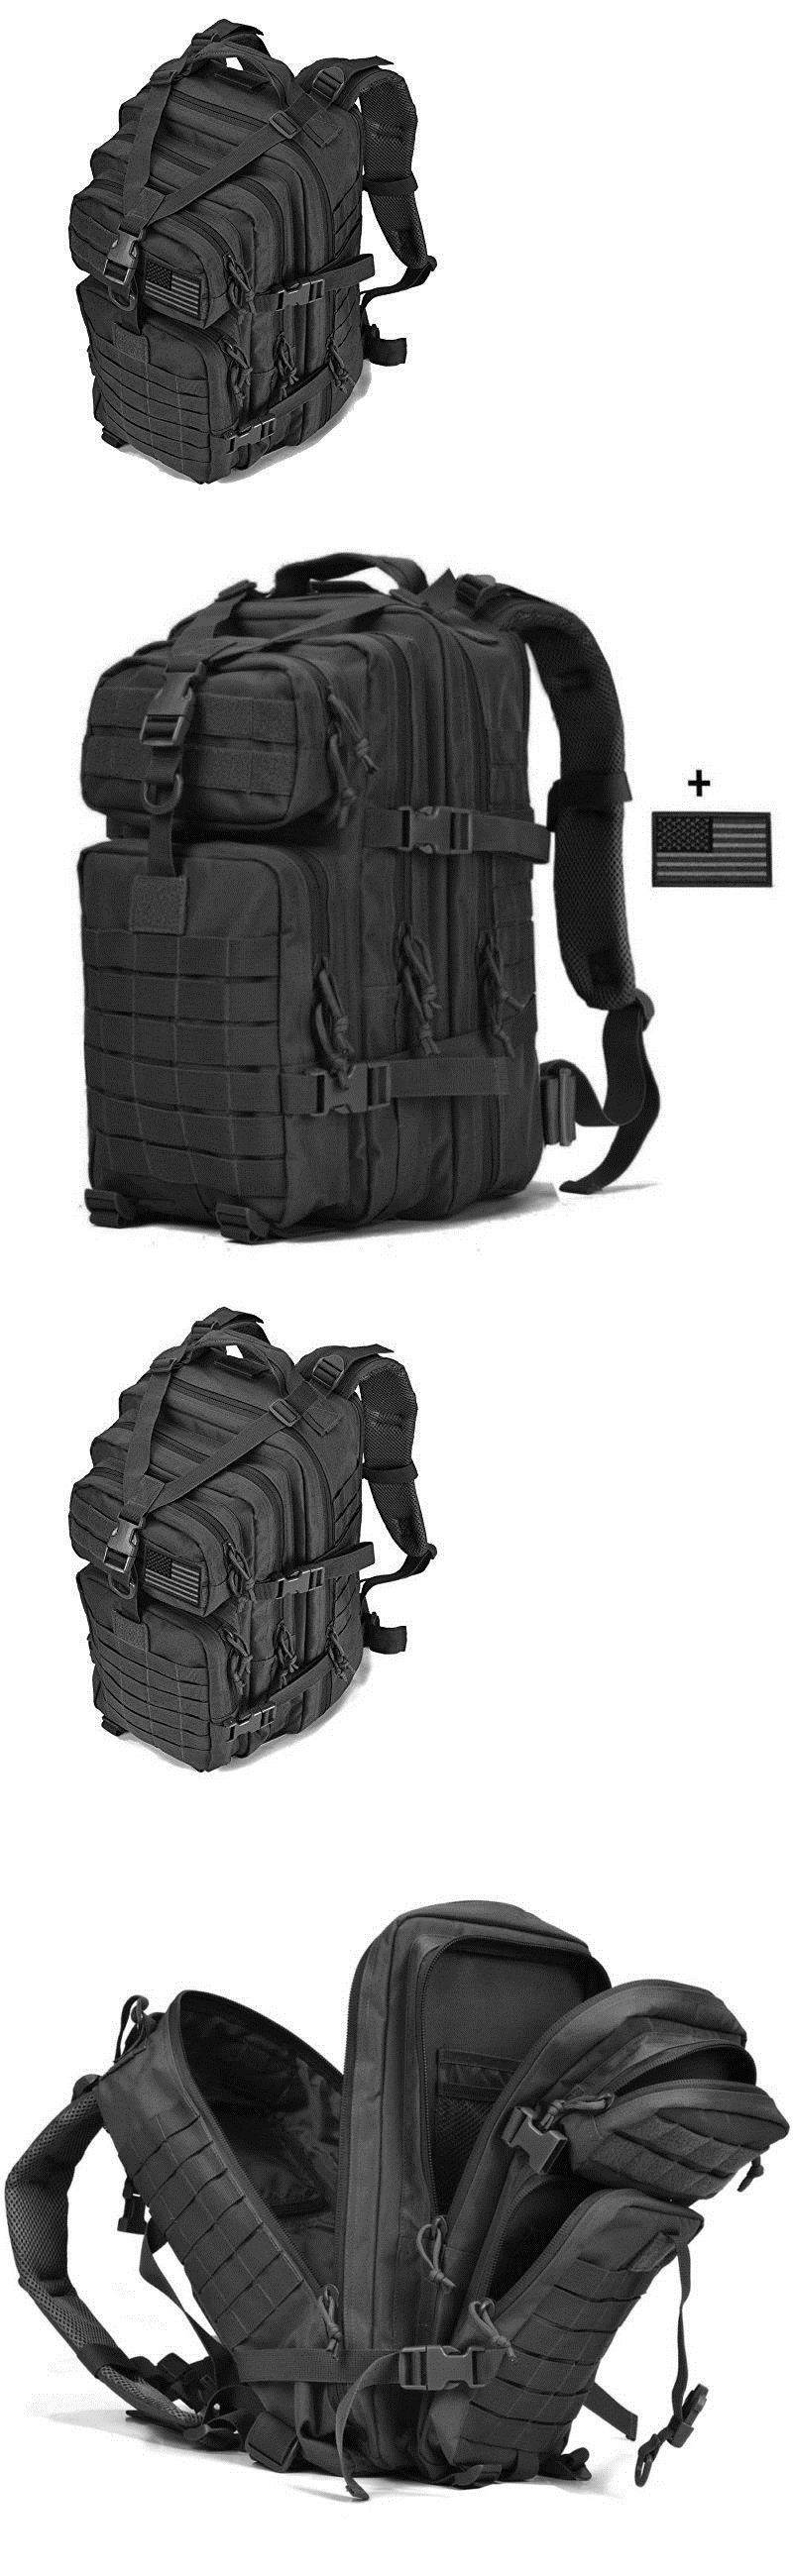 Day Packs 87122: 34L Small Military Tactical Backpack 3 Day Assault Pack Army Molle Bug Out Bag -> BUY IT NOW ONLY: $39.01 on eBay!